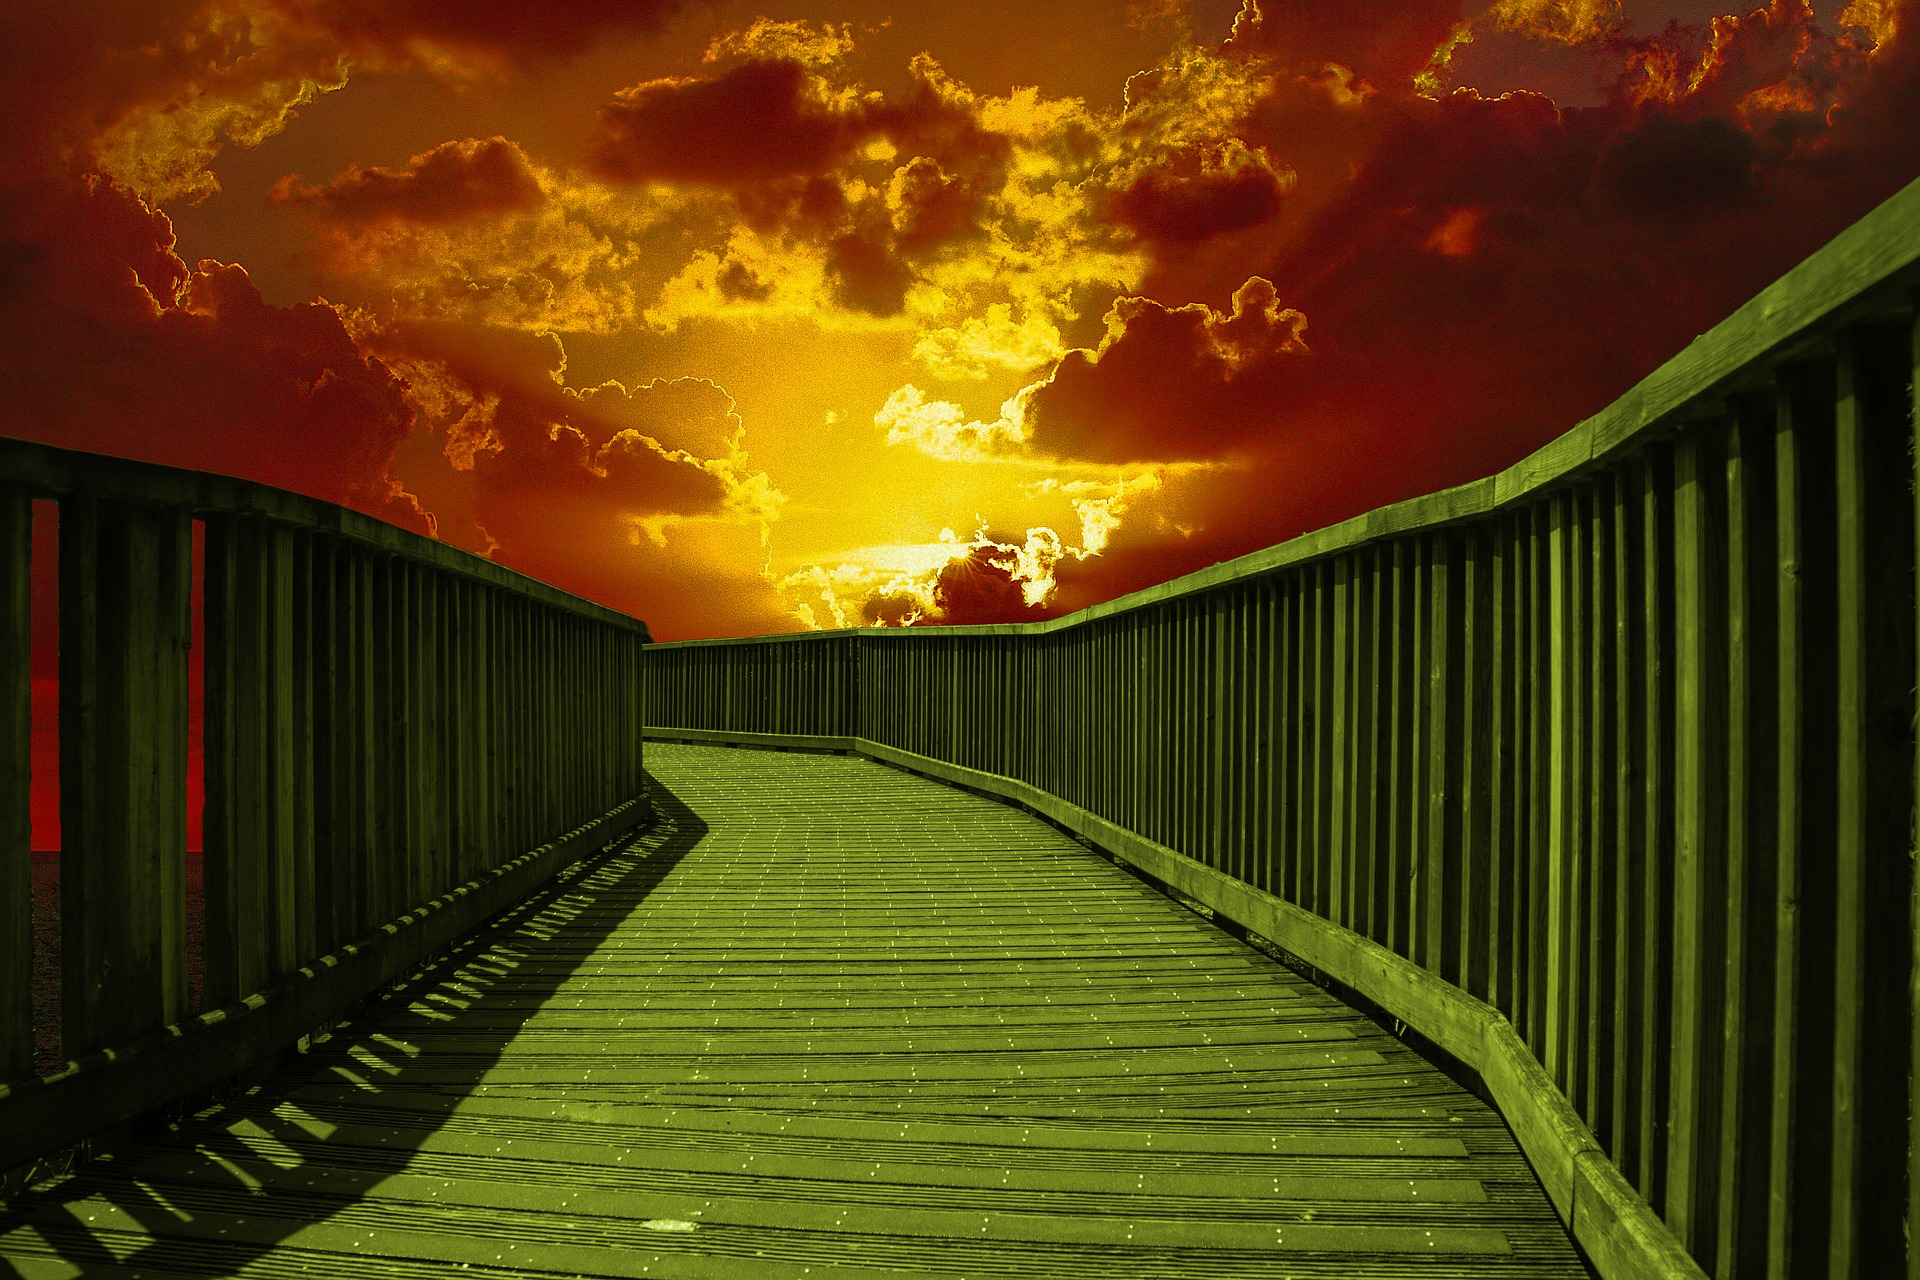 The Bridge to Freedom